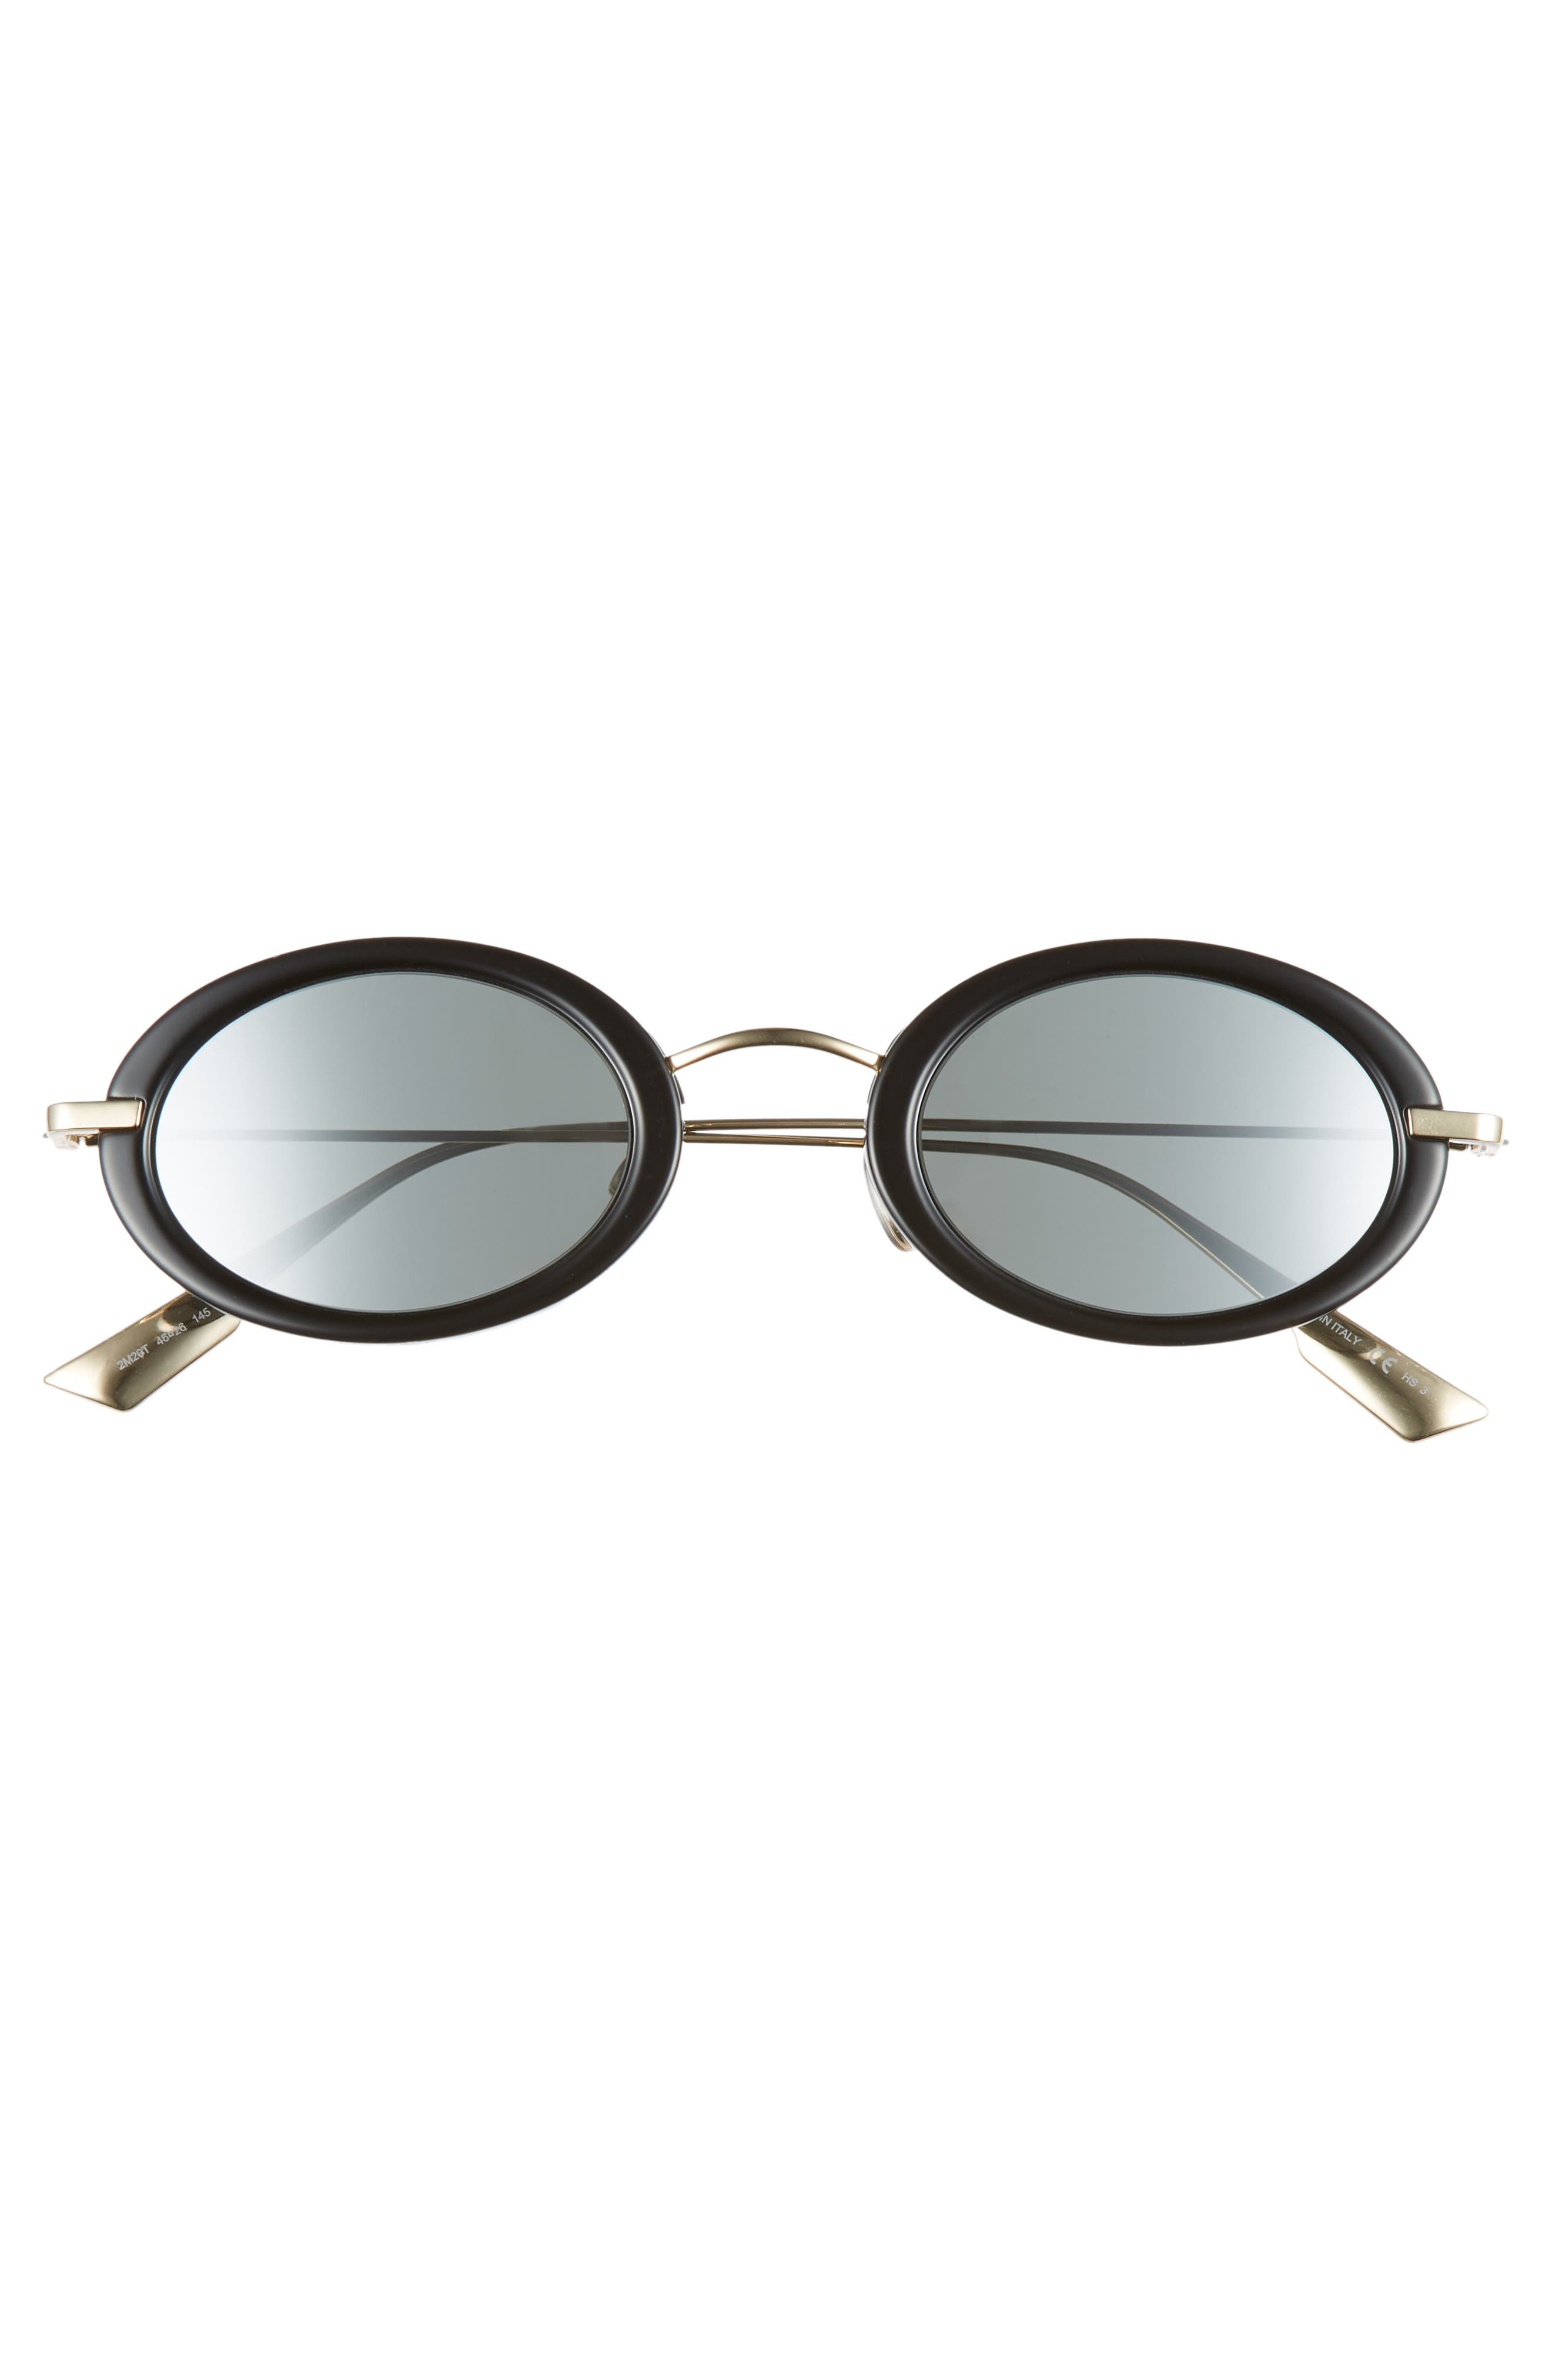 Christian Dior Hypnotic2 46mm Round Sunglasses,                             Alternate thumbnail 3, color,                             BLACK GOLD/ GREY SILVER